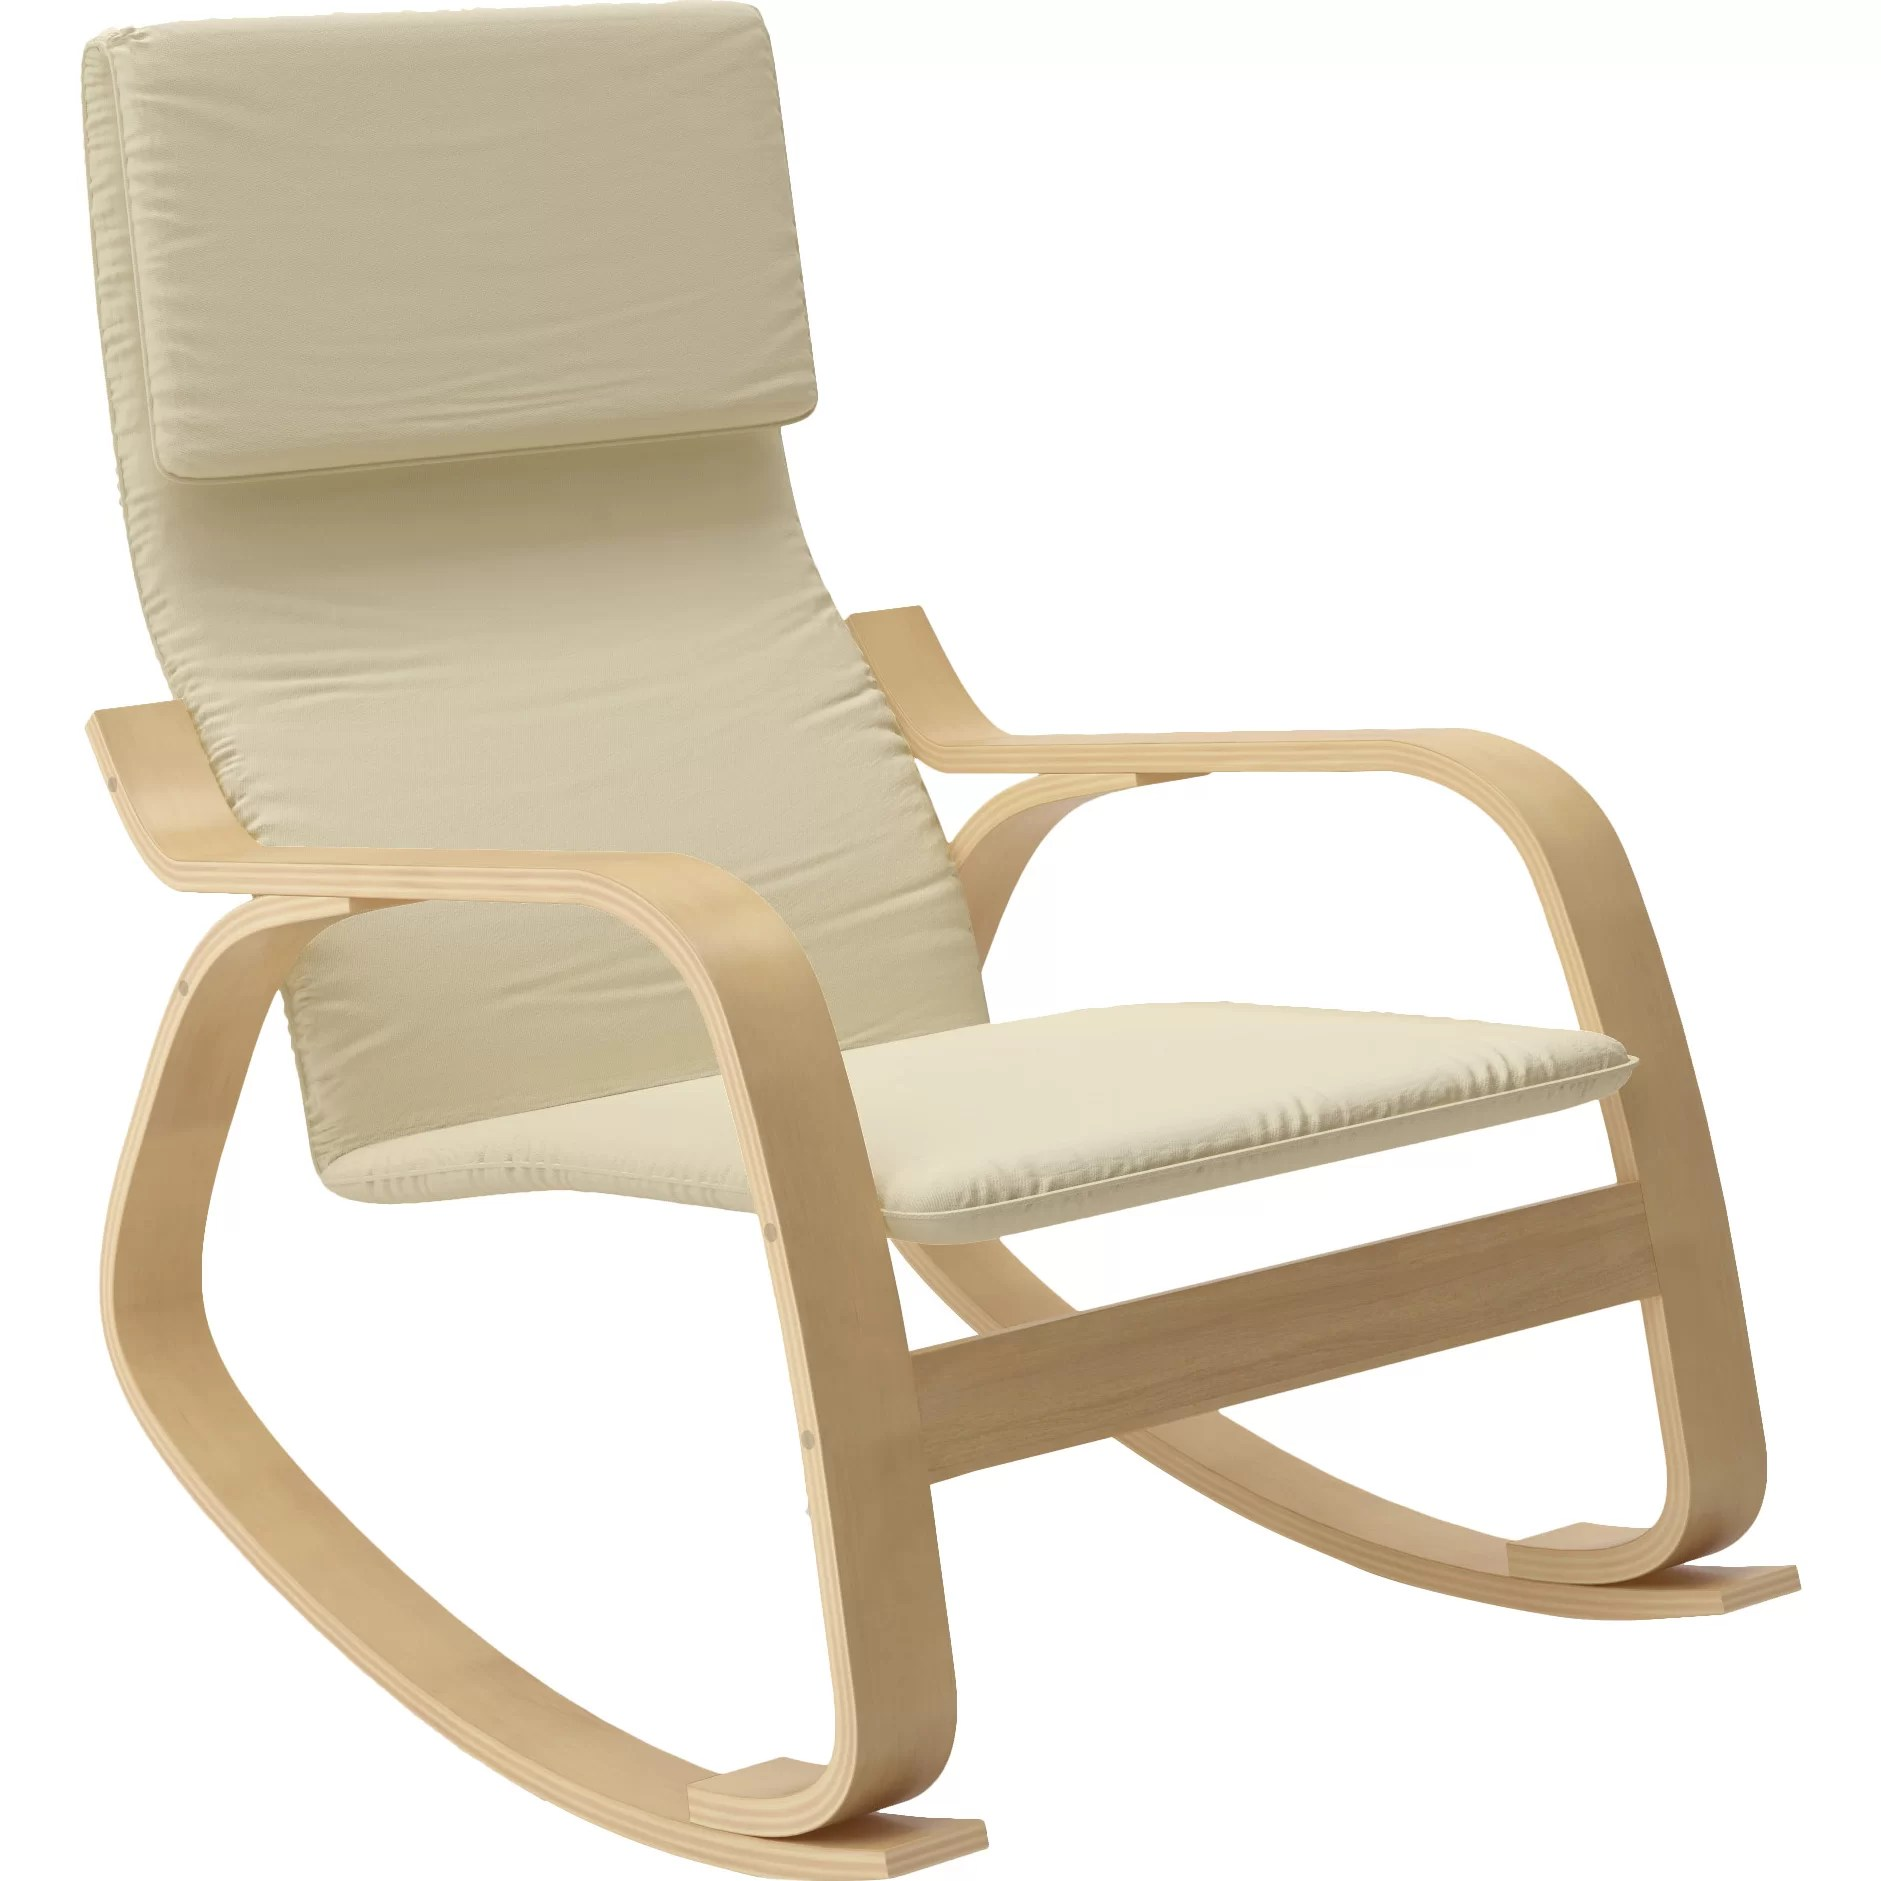 By Rocking Chair Dcor Design Aquios Rocking Chair And Reviews Wayfair